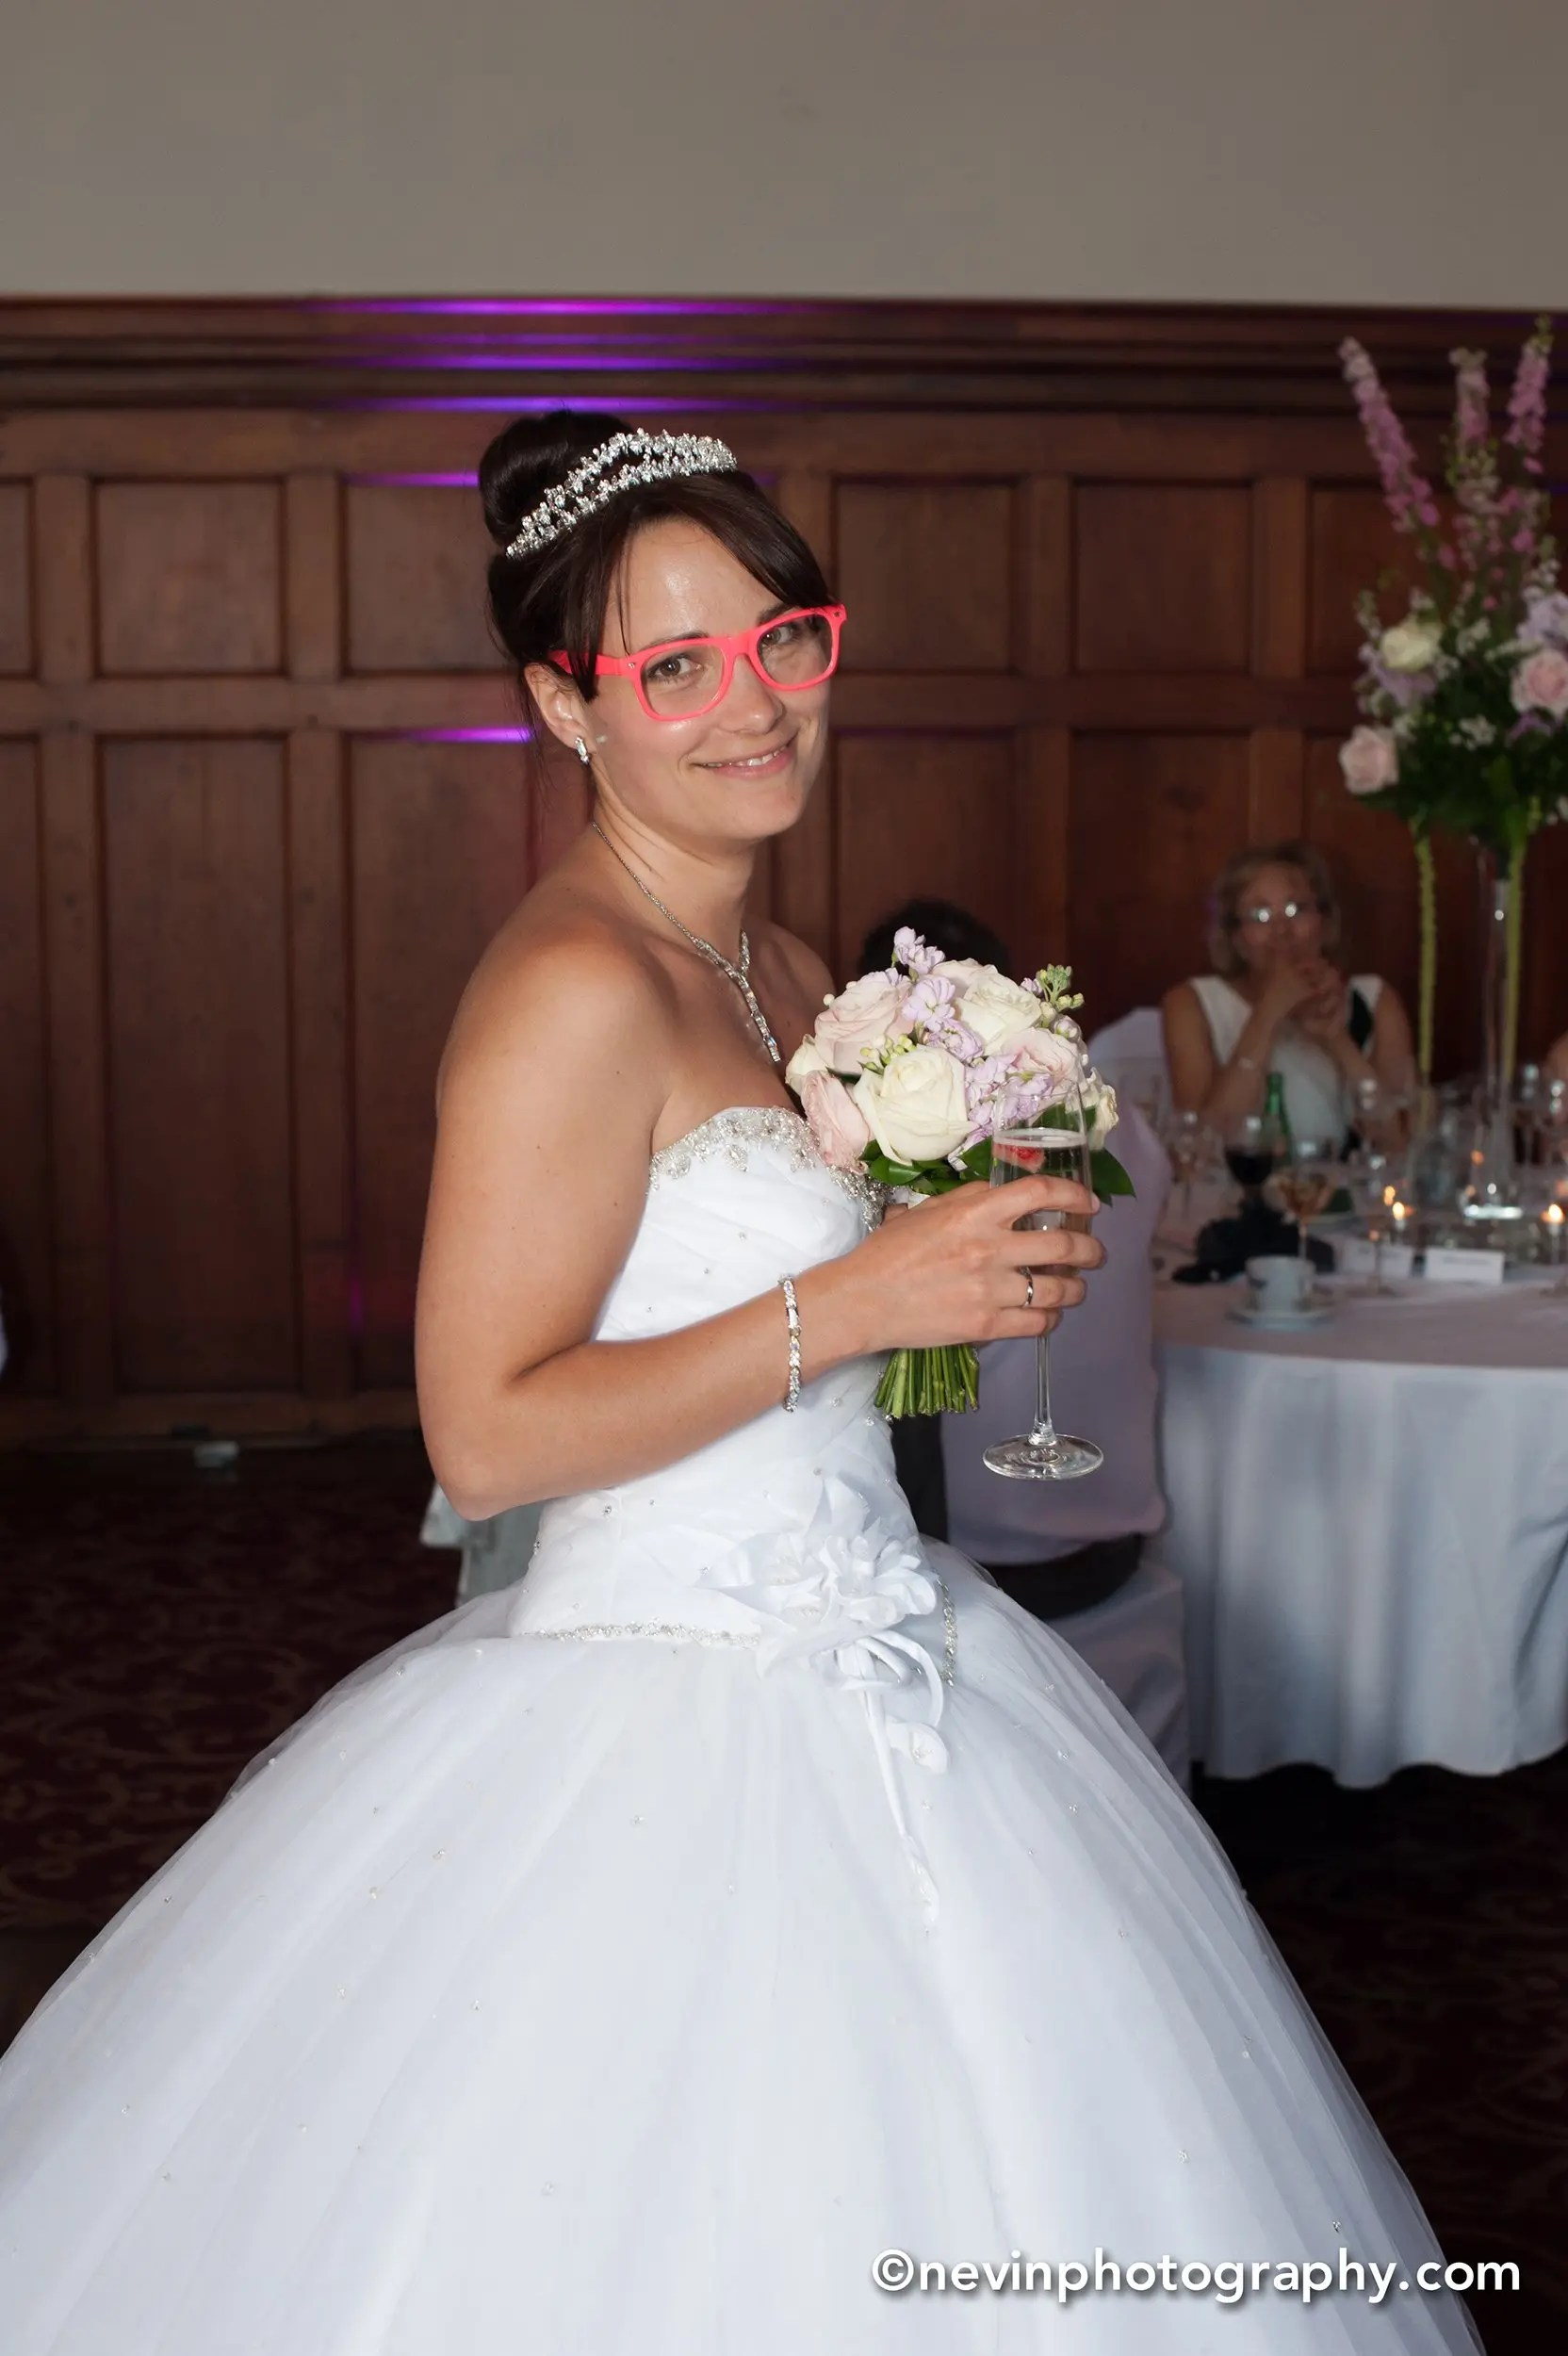 Bride smiling holding her champagne and bouquet while wearing funky glasses